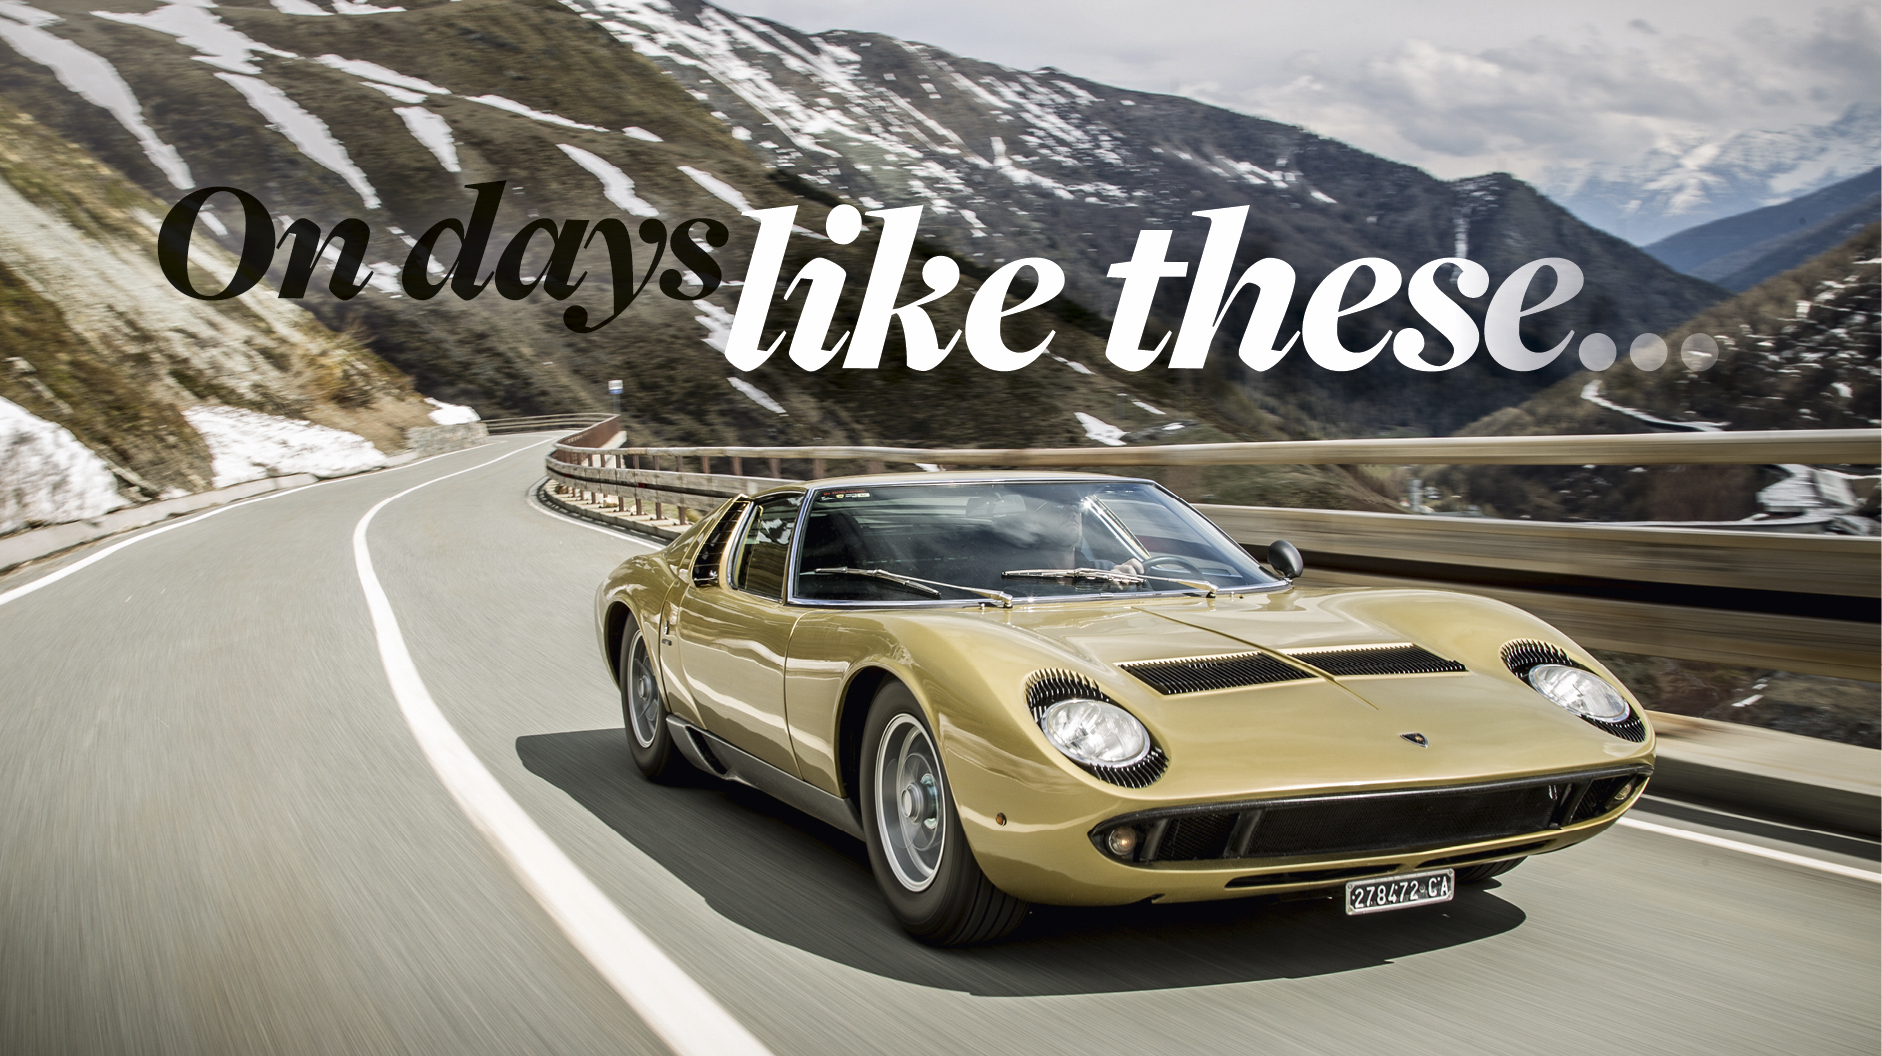 Recreating The Italian Job in a Lamborghini Miura | Top Gear on lamborghini estoque, lamborghini reventon, lamborghini espada, lamborghini silhouette, lamborghini veneno, lamborghini ankonian, lamborghini urraco, lamborghini diablo, lamborghini jalpa, lamborghini truck, lamborghini huracan, lamborghini motorcycle, lamborghini murcielago, lamborghini countach, lamborghini limo, lamborghini lm 002, lamborghini navarra, lamborghini islero, lamborghini 350 gt, lamborghini aventador,